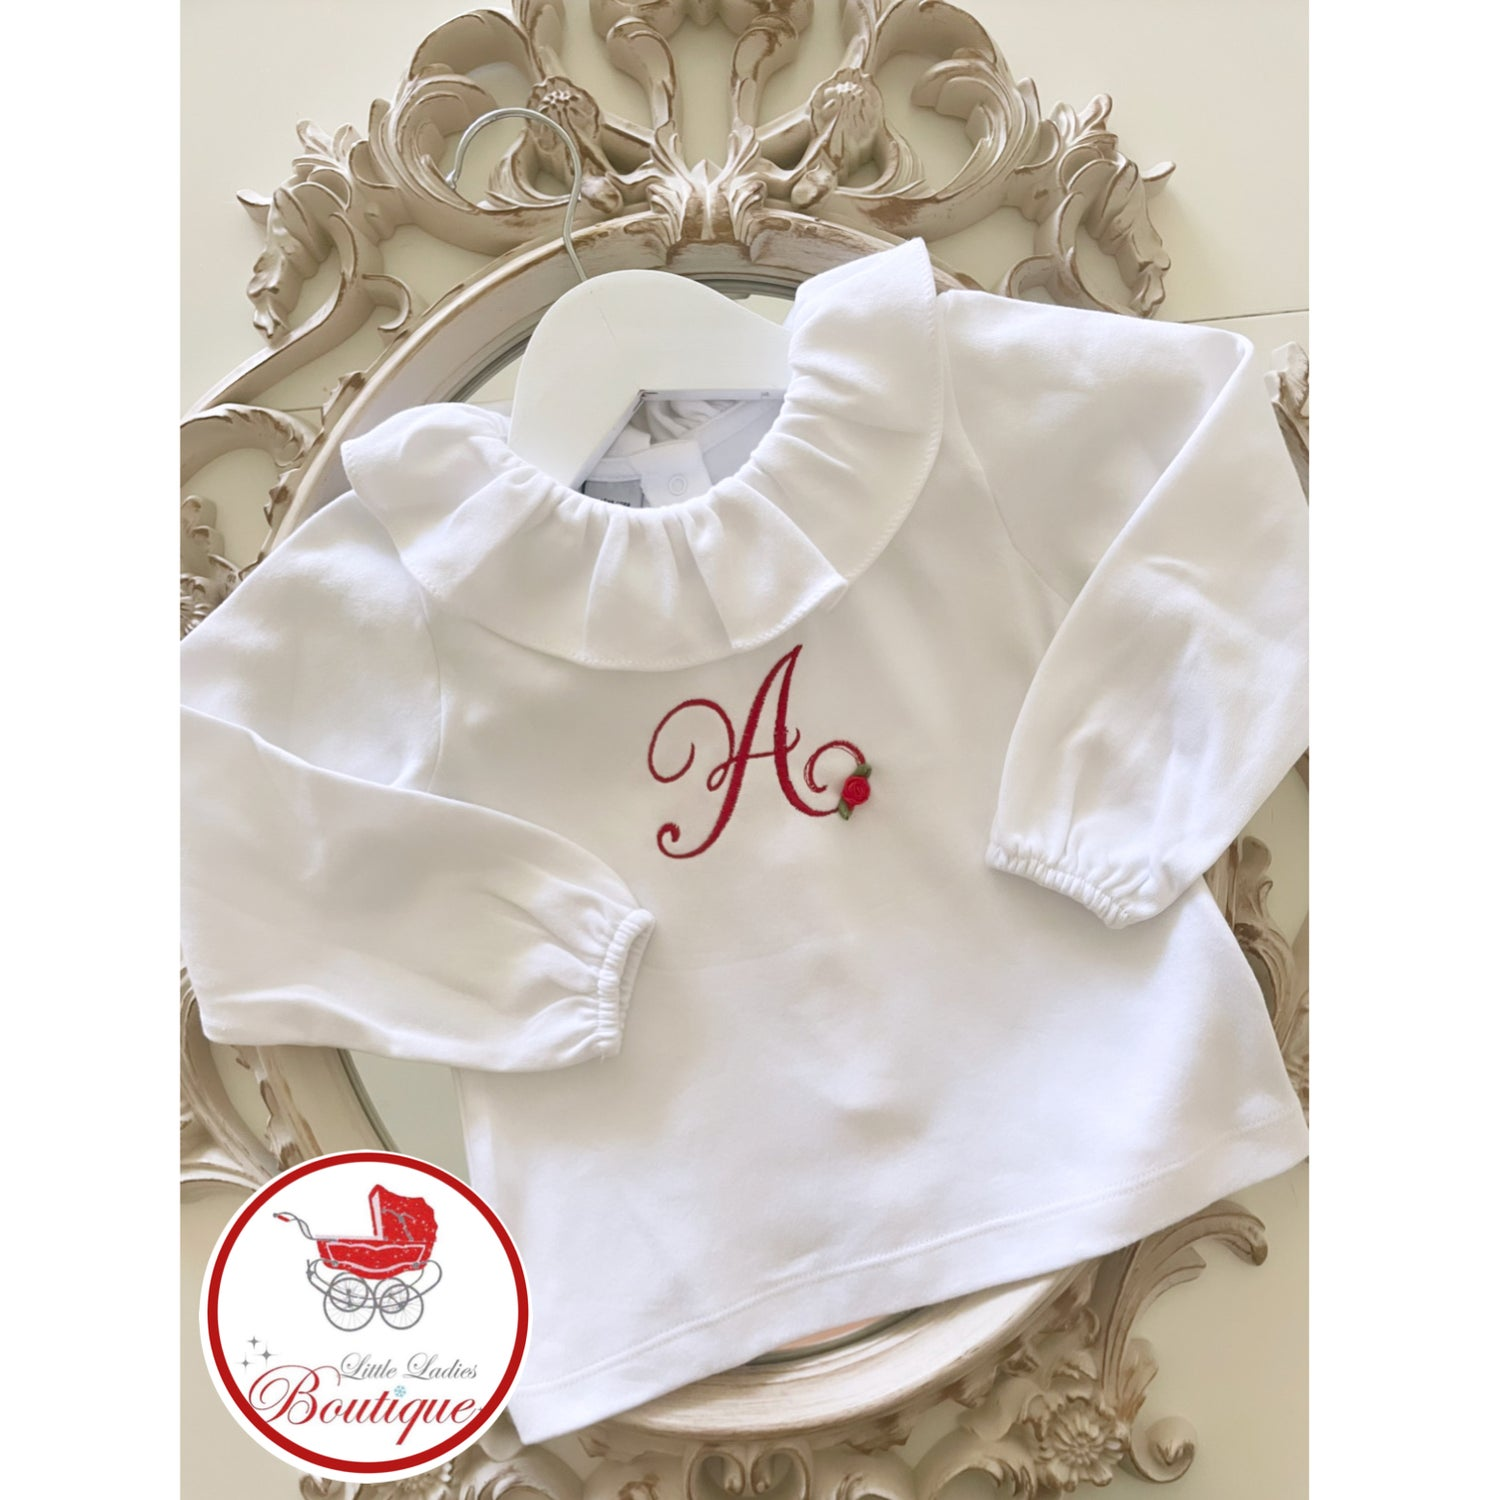 Image of Personalized frilly collar top.